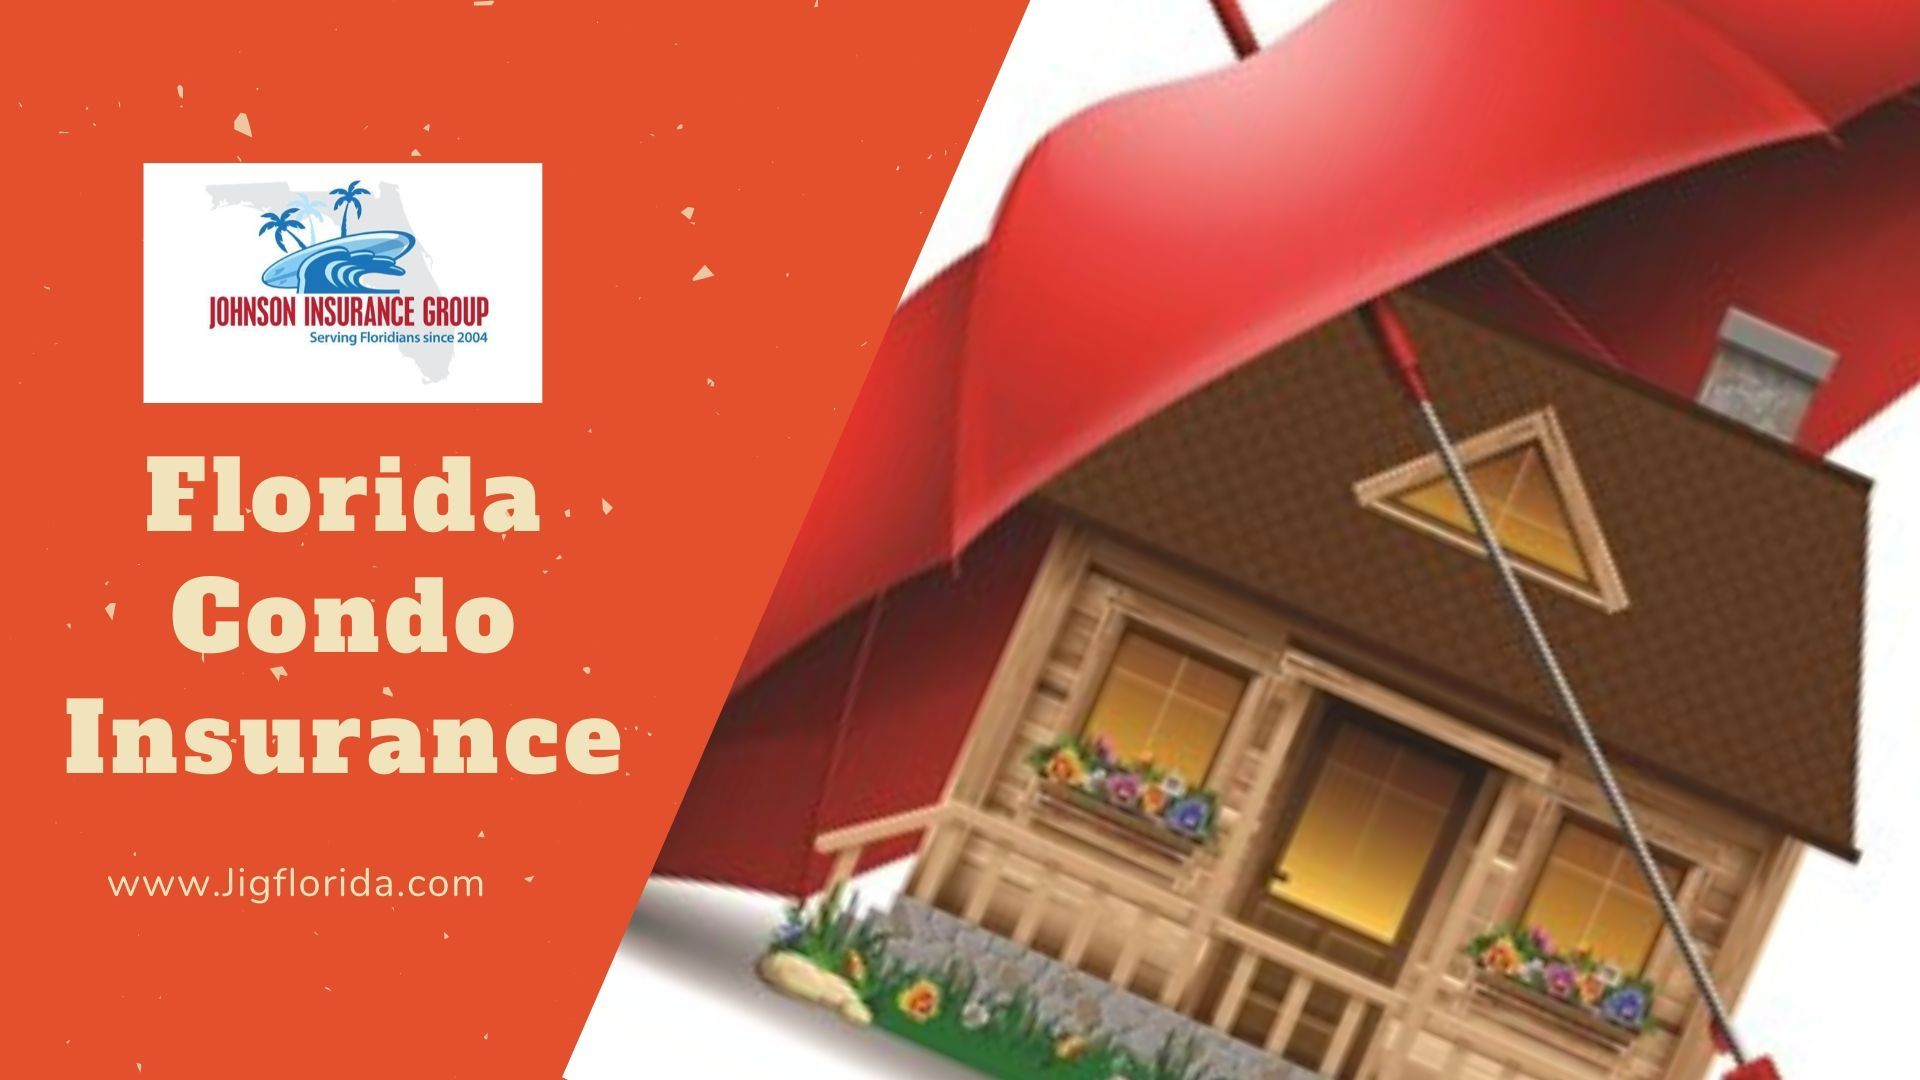 Get the best condo insurance in Florida. Visit the website